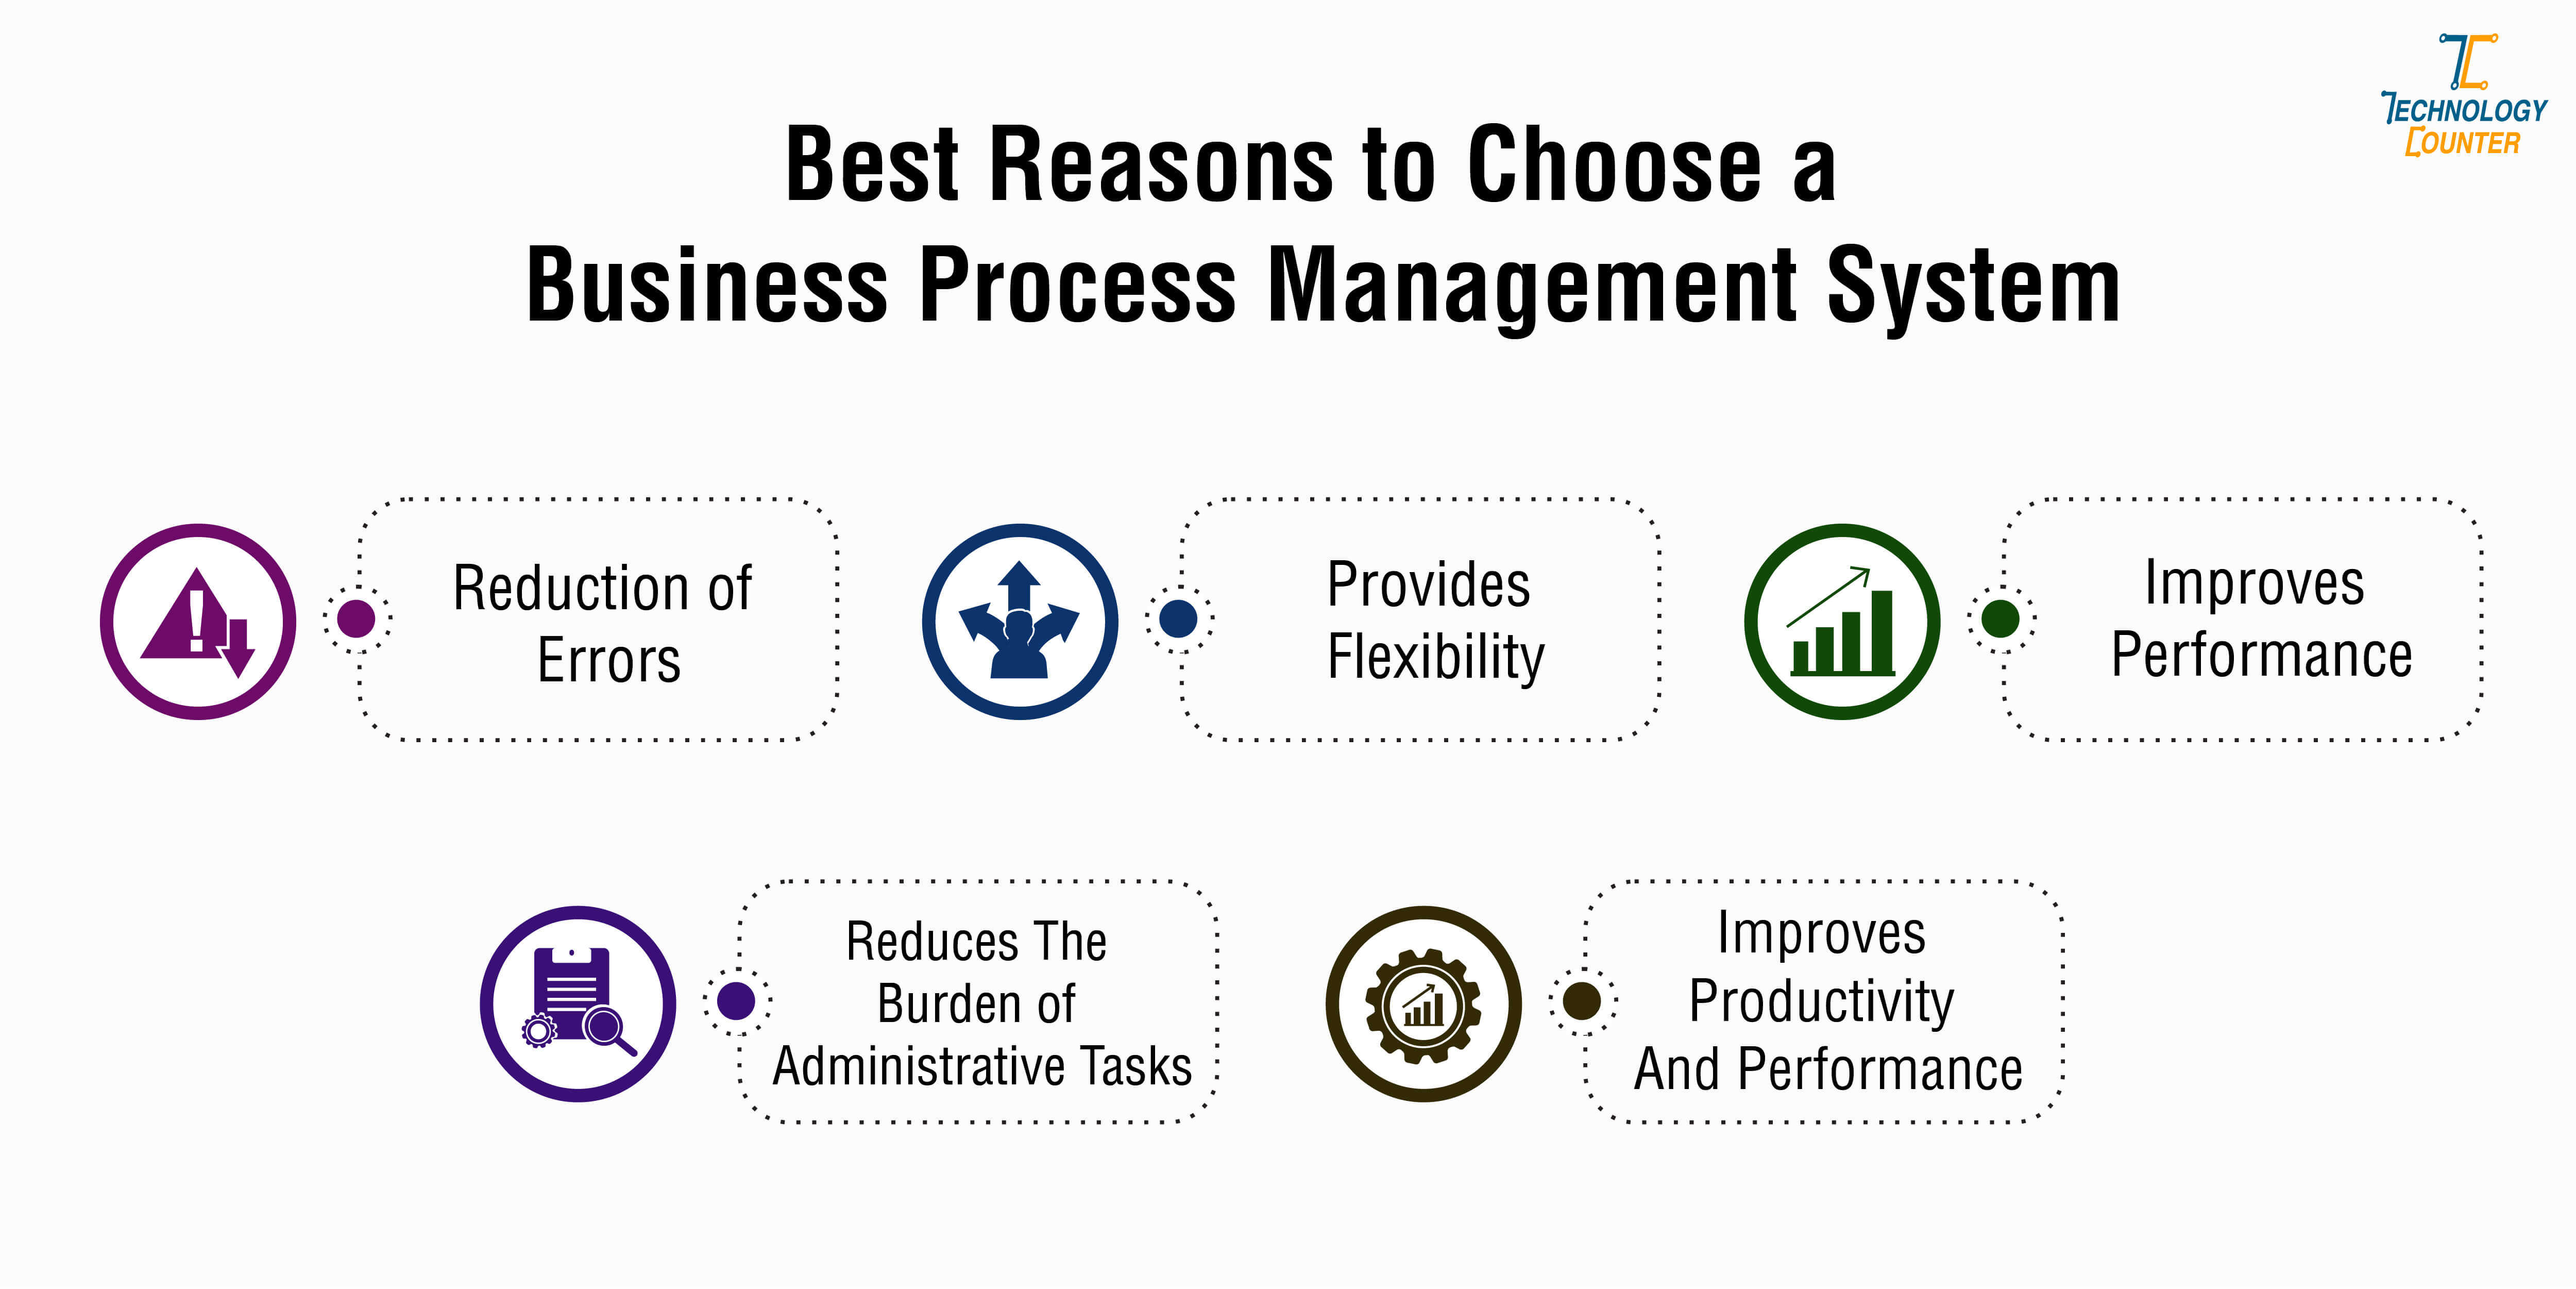 Best Reasons to Choose a Business Process Management System